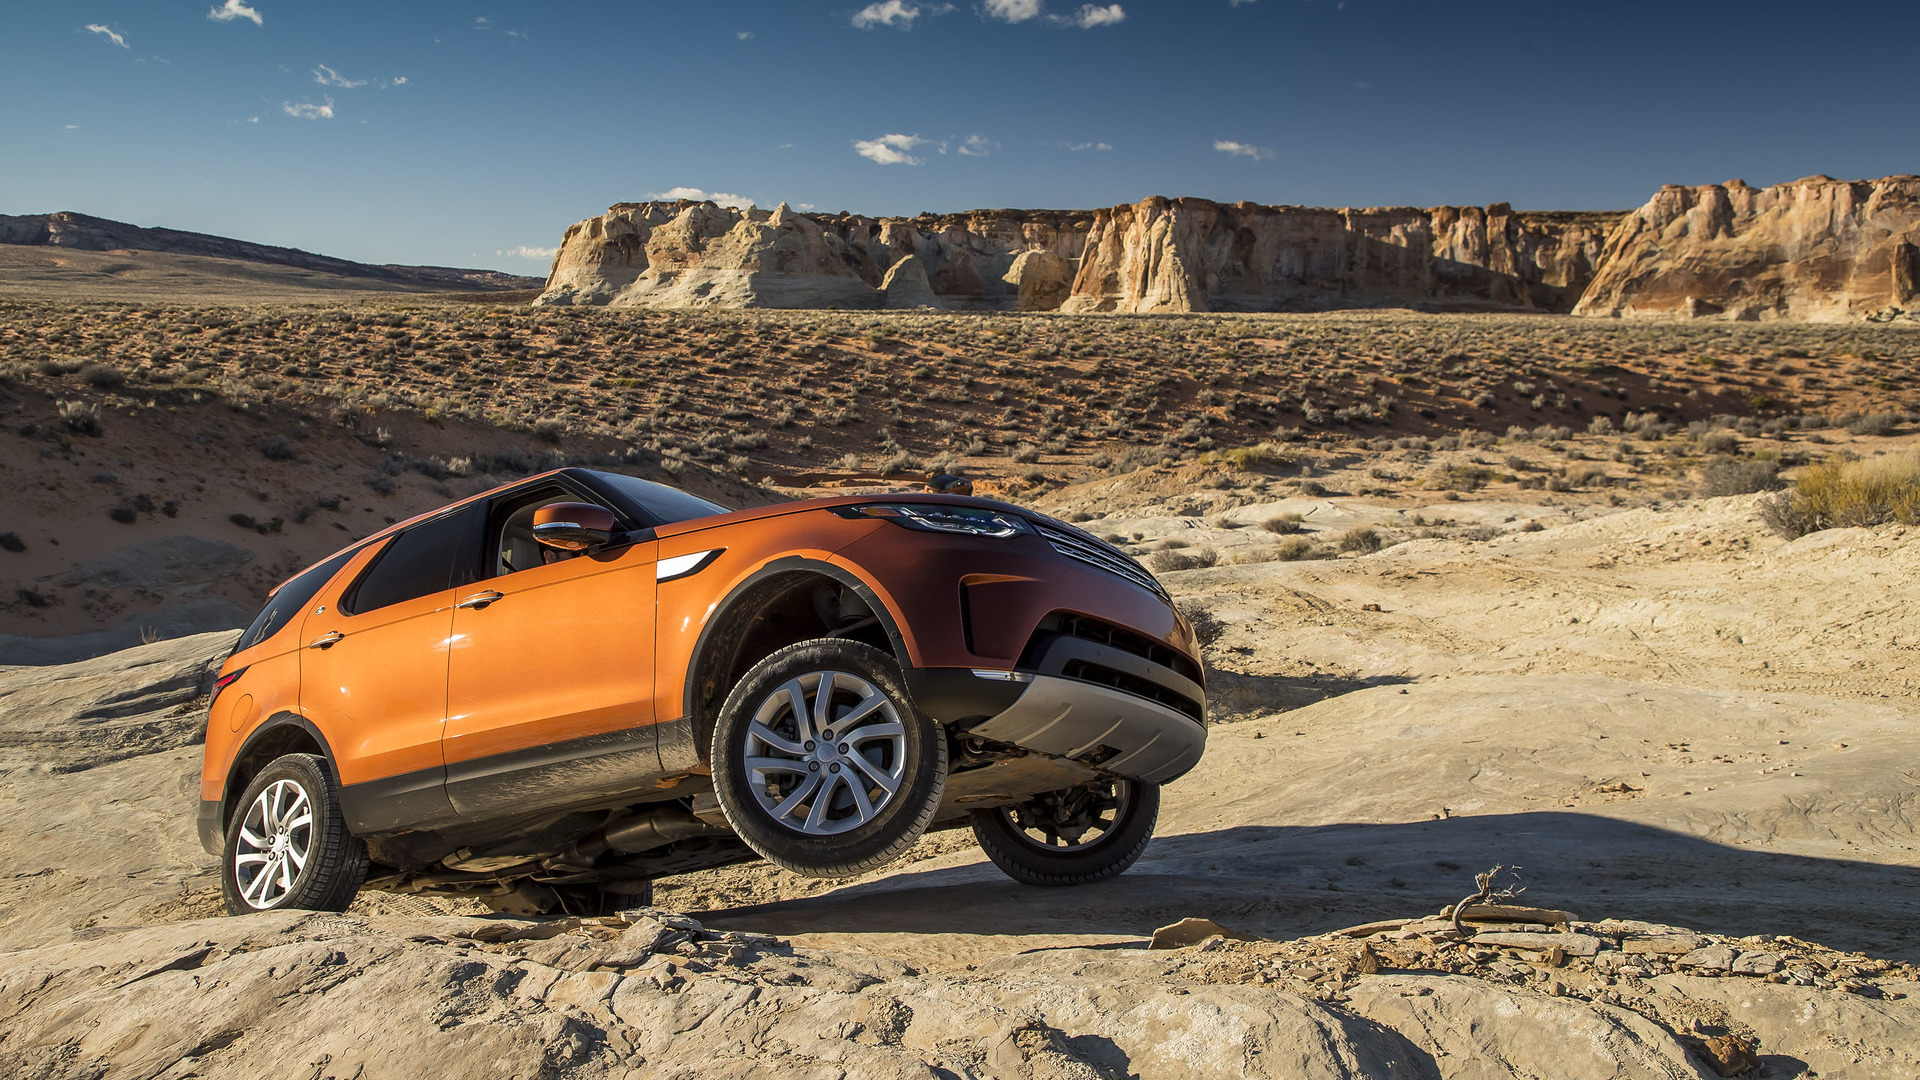 https://icdn-9.motor1.com/images/mgl/kLWJY/s1/2017-land-rover-discovery-first-drive.jpg